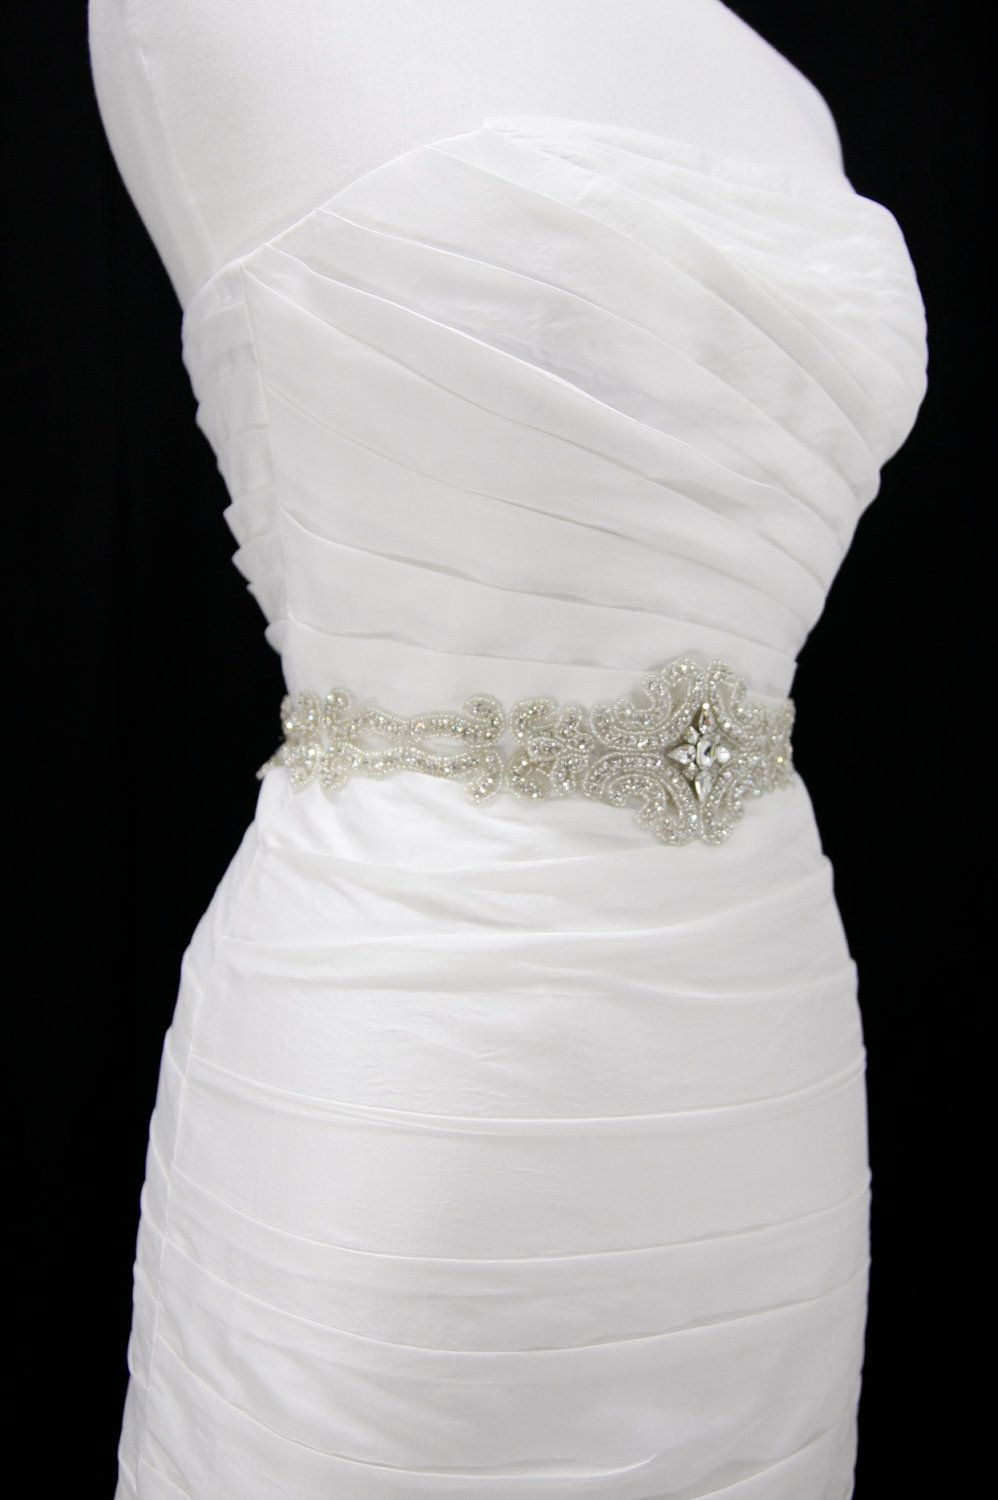 Crystal bridal belt sash wedding sash fashion pinterest